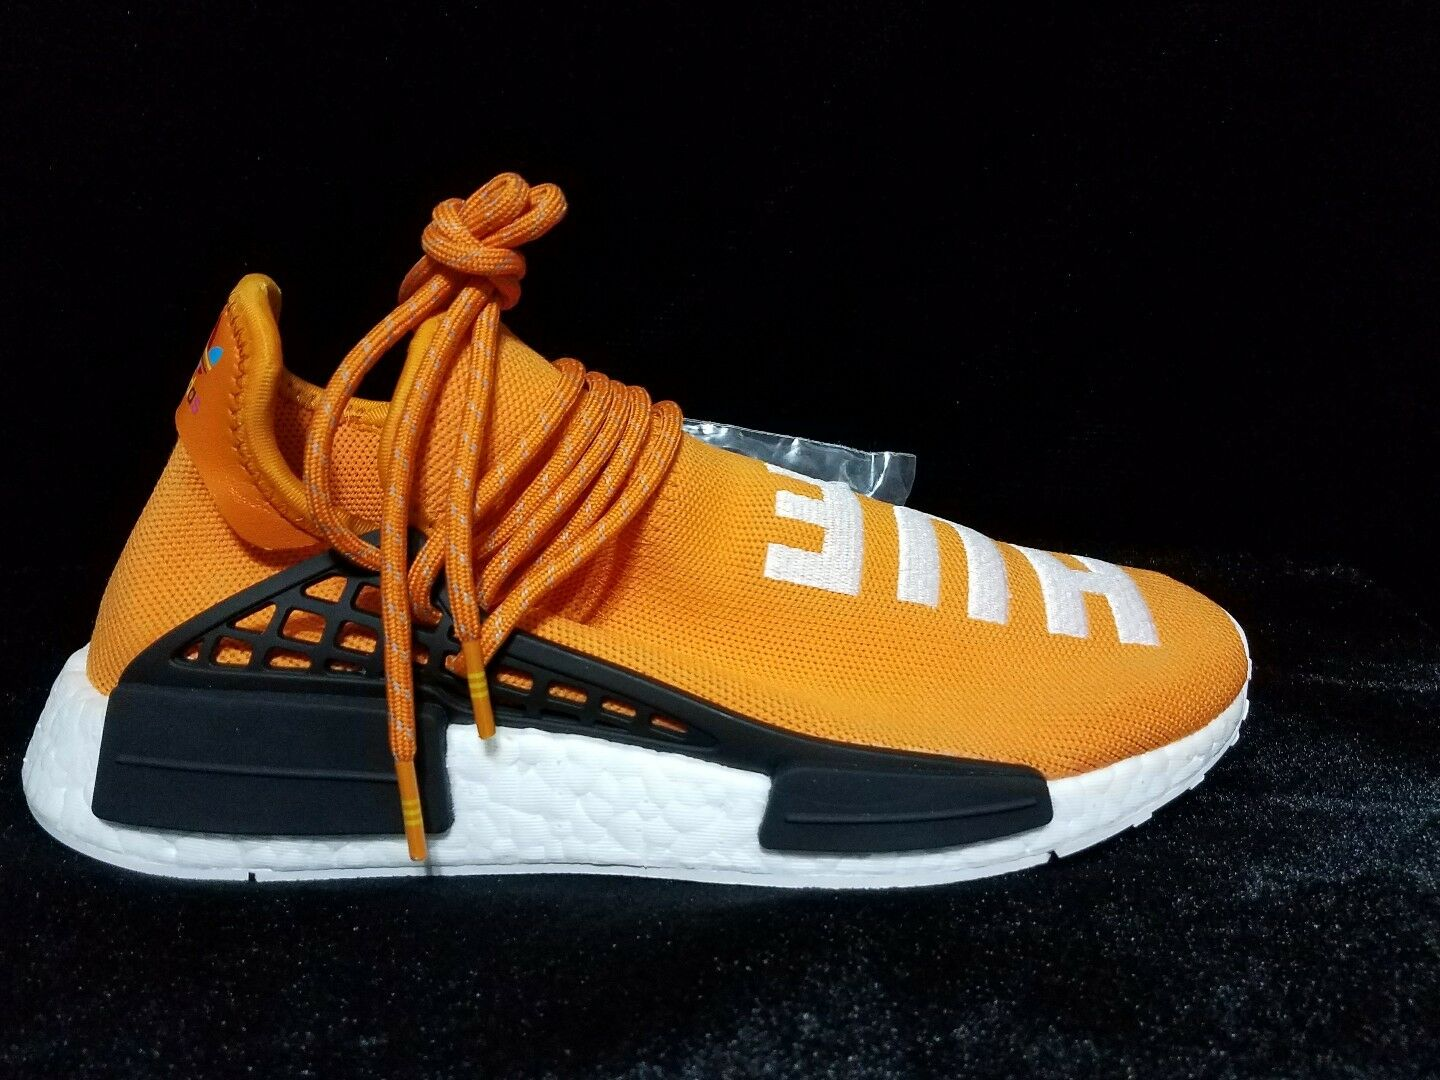 Adidas PW HUMAN RACE NMD BB3070 Pharrell Williams LIMITED 2016 Release size 7 US